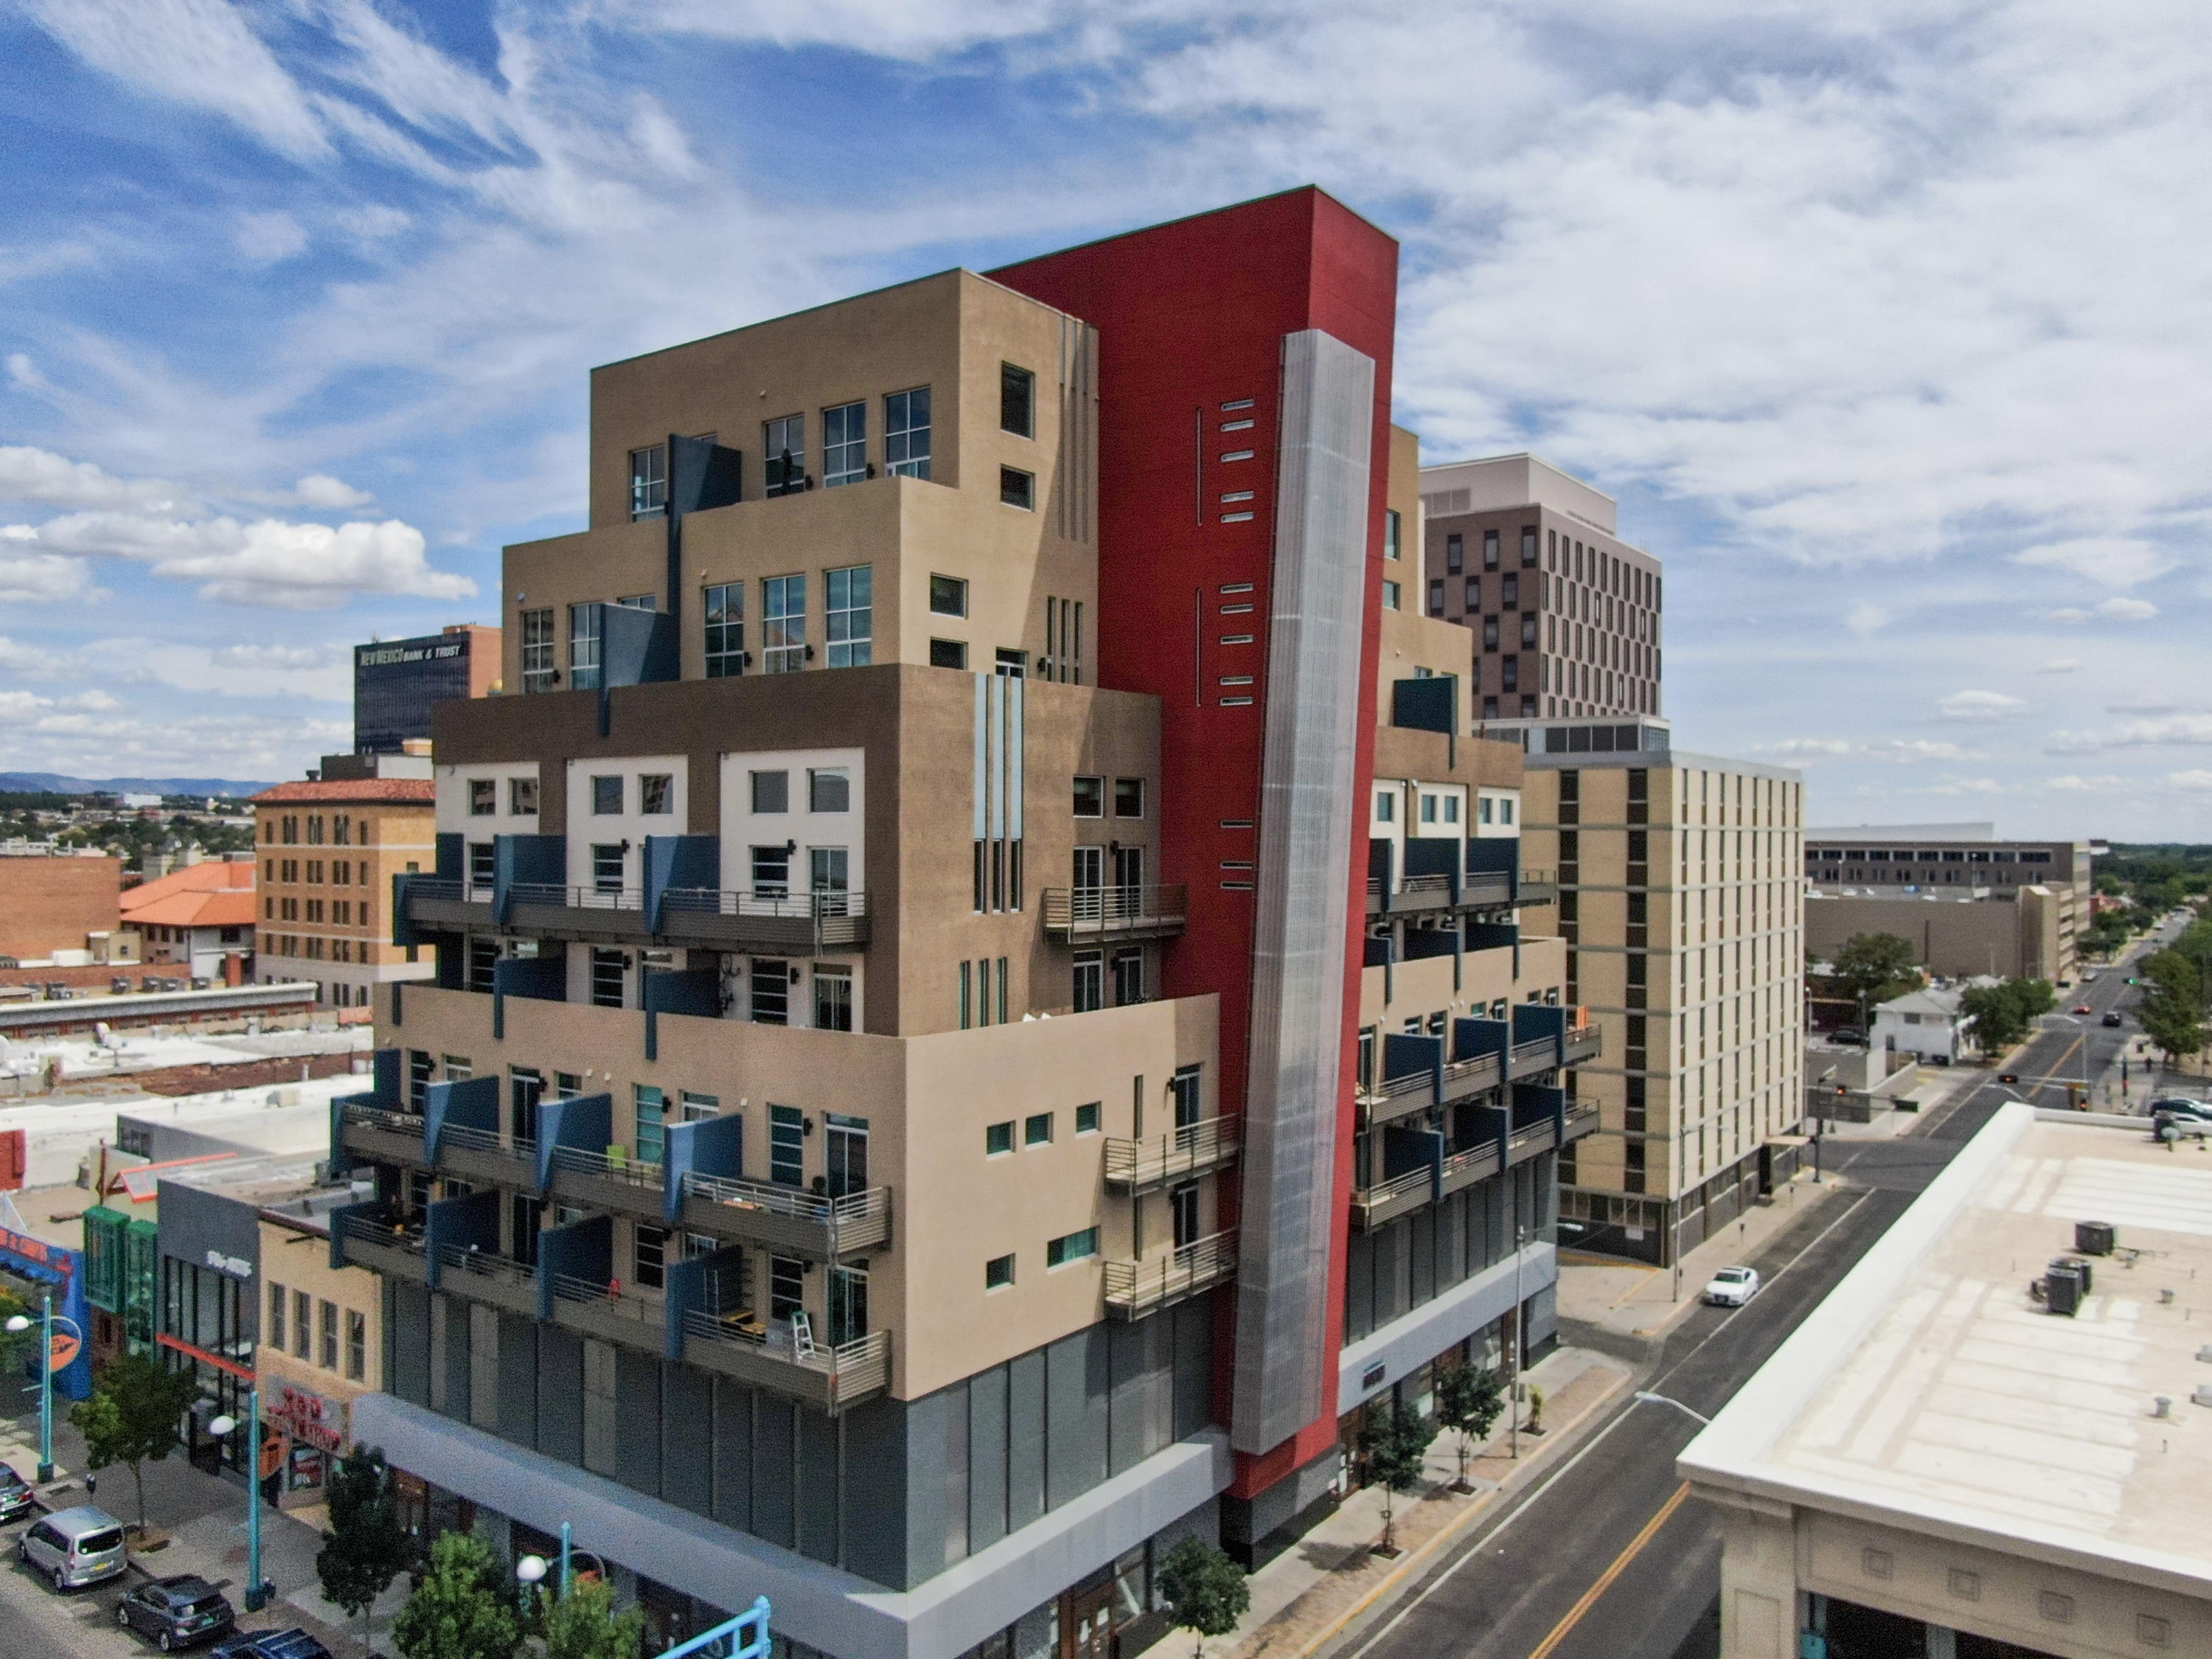 An amazing opportunity to live in a luxury condominium in the heart of Albuquerque. Experience this unique loft, with it's high ceilings, lots of natural light both downstairs and upstairs. Views towards the North East, for some interesting downtown skyline and Sandia mountains beyond.The upper floor is entirely dedicated to the master bedroom suite, with enough room for either an office or extra living area overlooking the downstairs living/kitchen area. Equipped with it's own washer/dryer. With it's own parking with secured access, this building is one of the newest downtown condo buildings, if not the newest (completed in 2015).Priced at $175/sqft for a quick sell, lofts in this building have appraised for up to $240+/sqft.